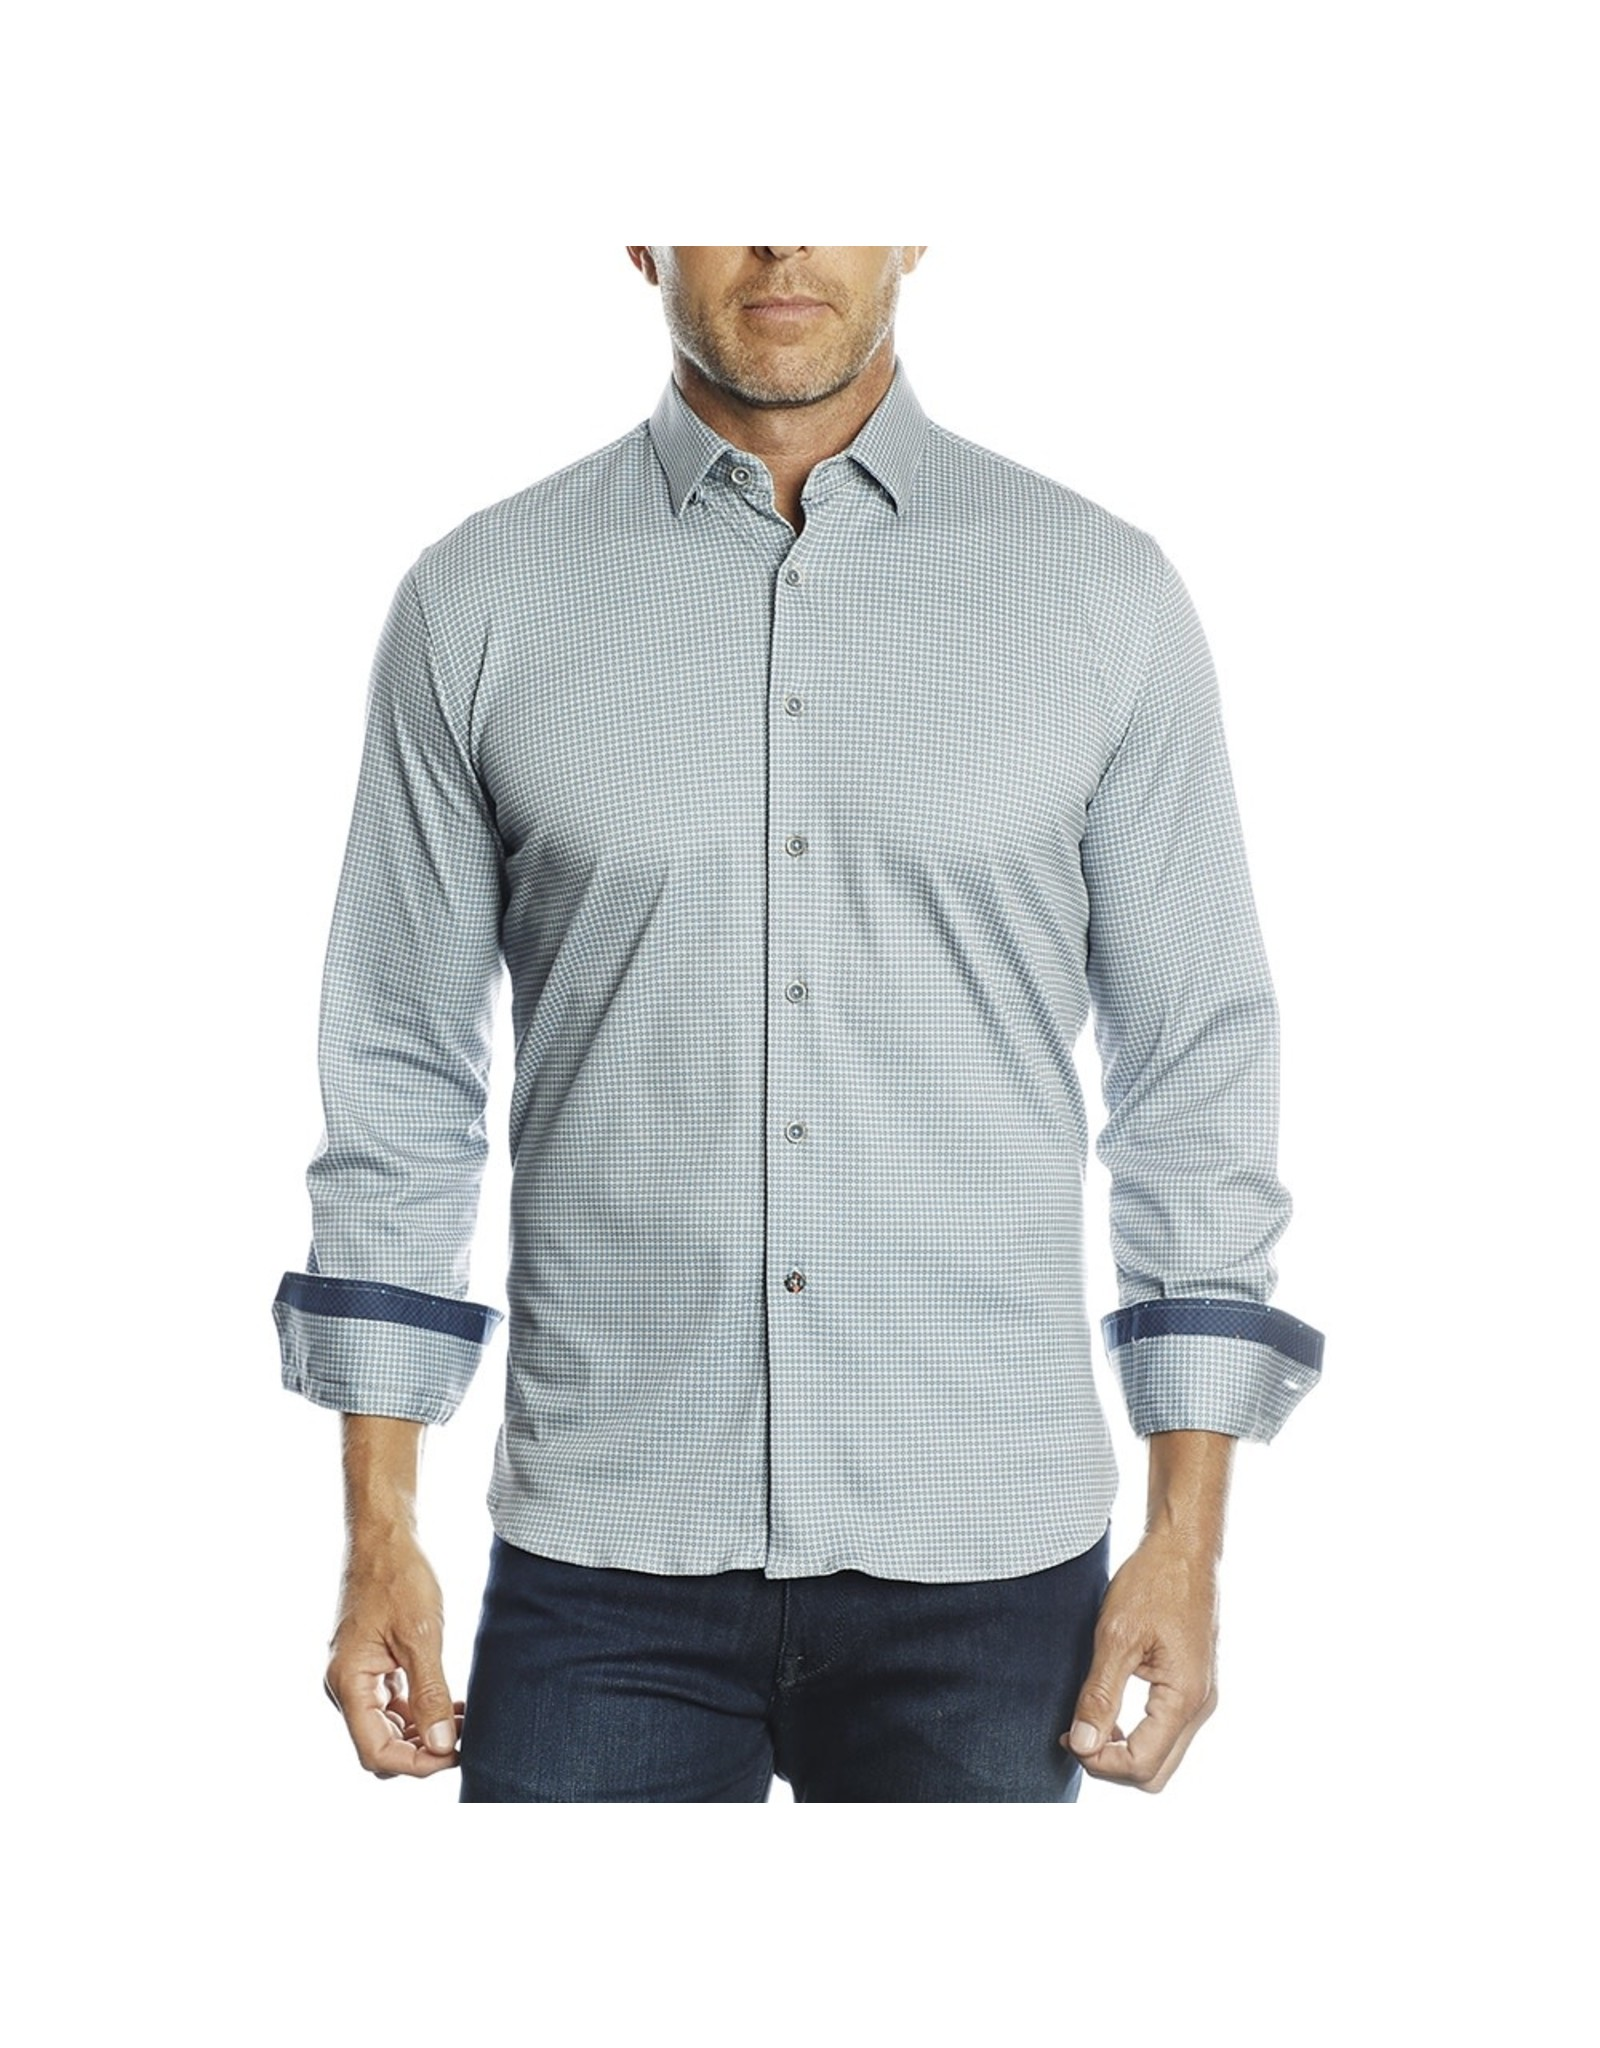 Luchiano Visconti 4326 Global Mint Shirt